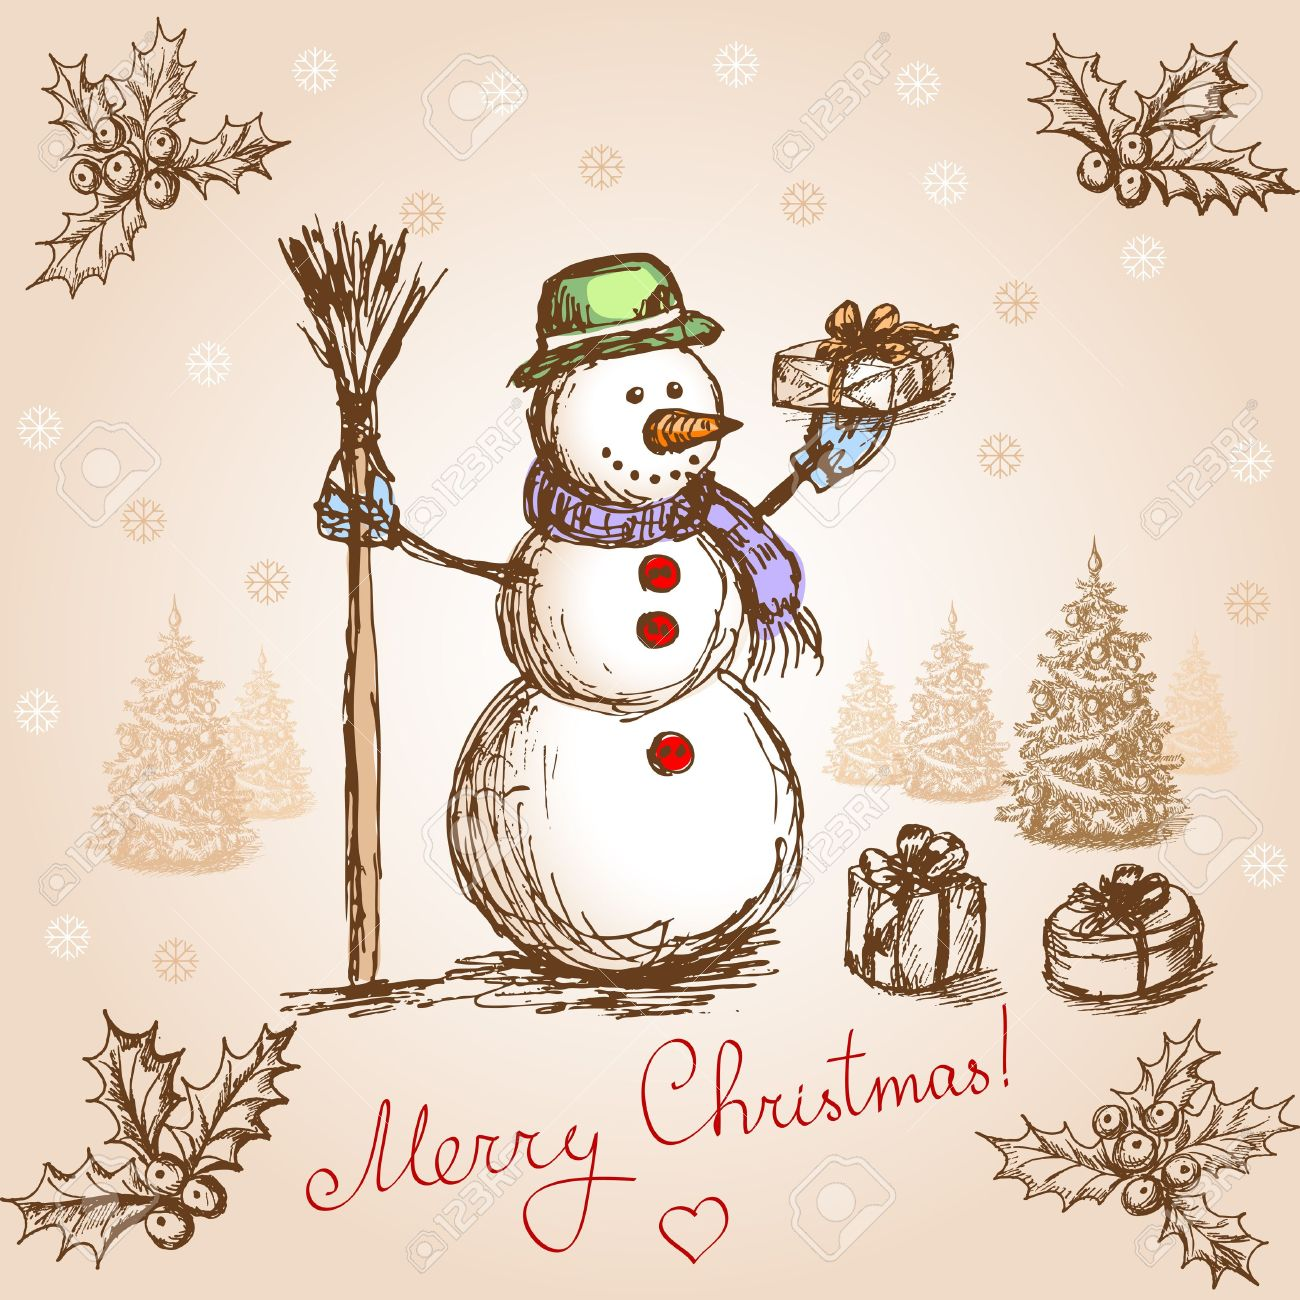 Hand Drawn Christmas Card In Vintage Stile Royalty Free Cliparts ...